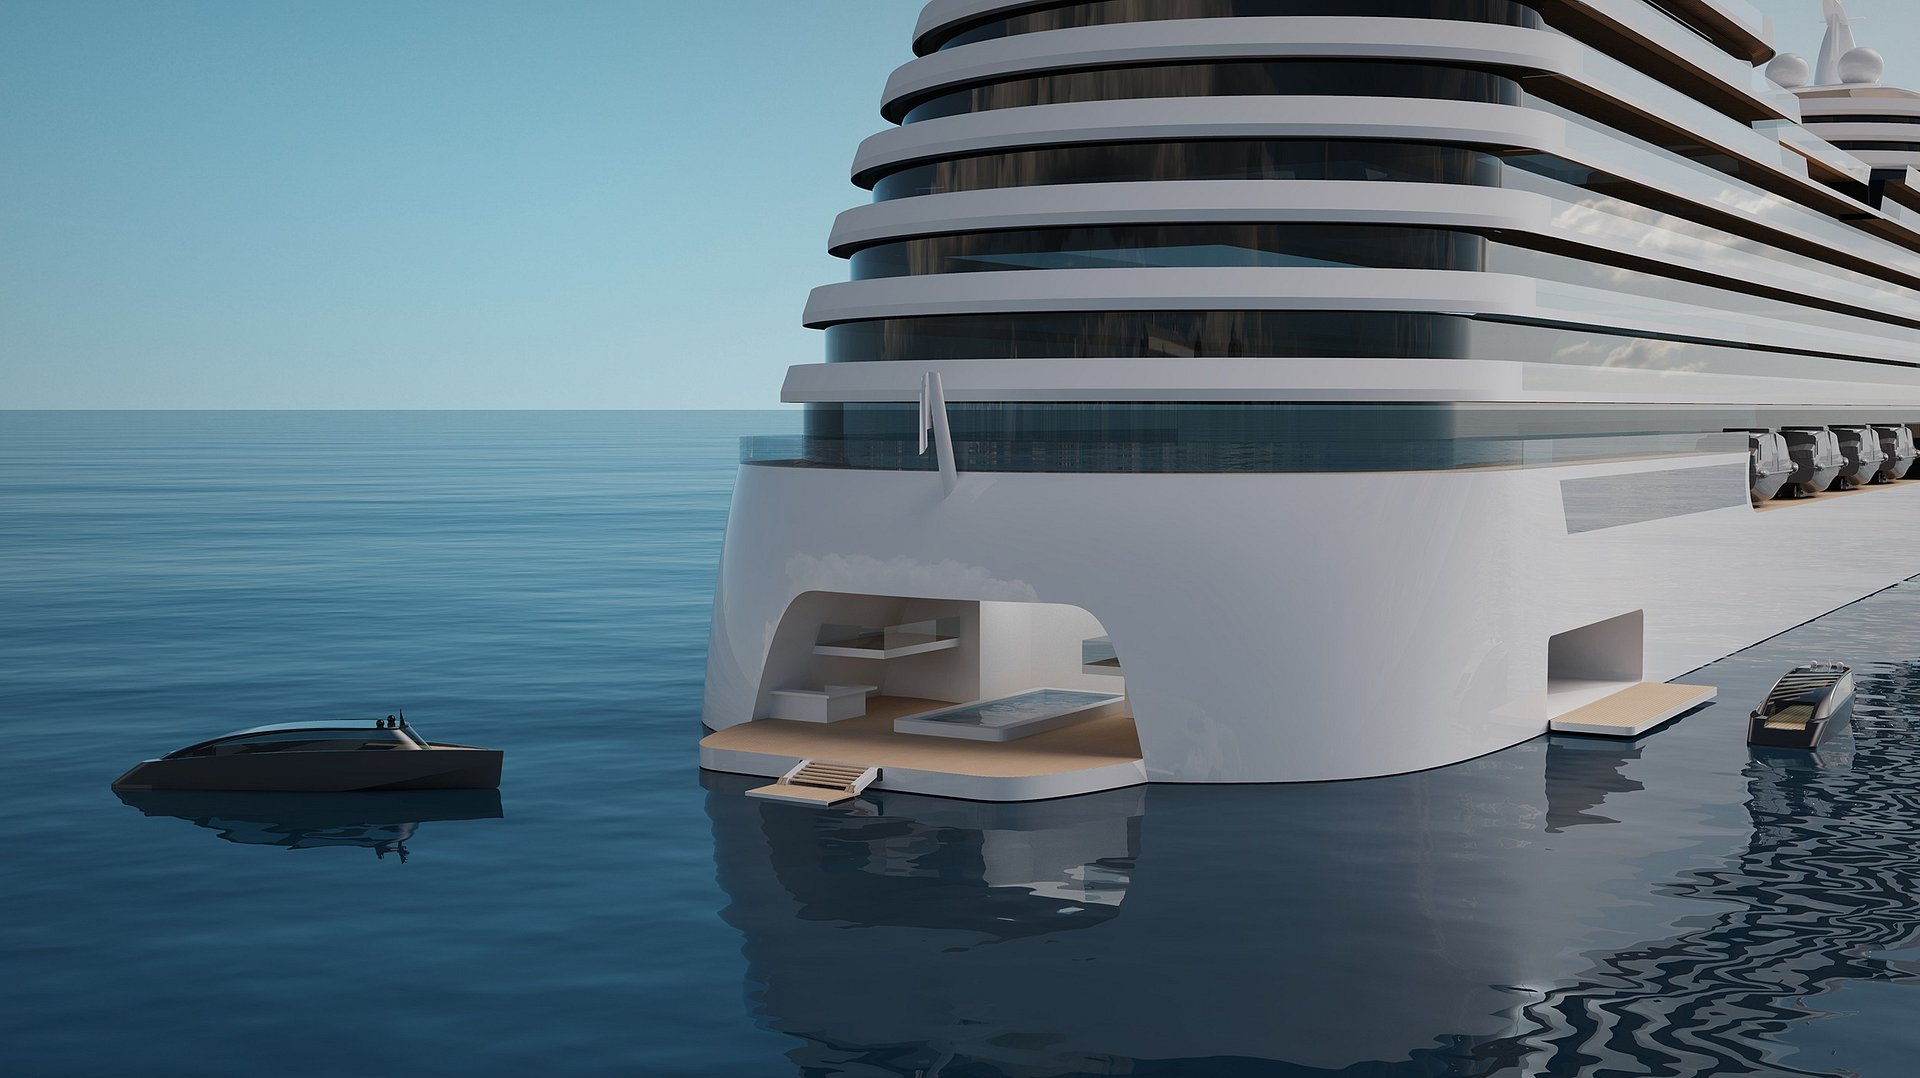 STORYLINES TO BUILD THE WORLD'S GREENEST CRUISE SHIP AND WILL BE HOME TO WORLD'S FIRST AFFORDABLE RESIDENTIAL COMMUNITY AT SEA